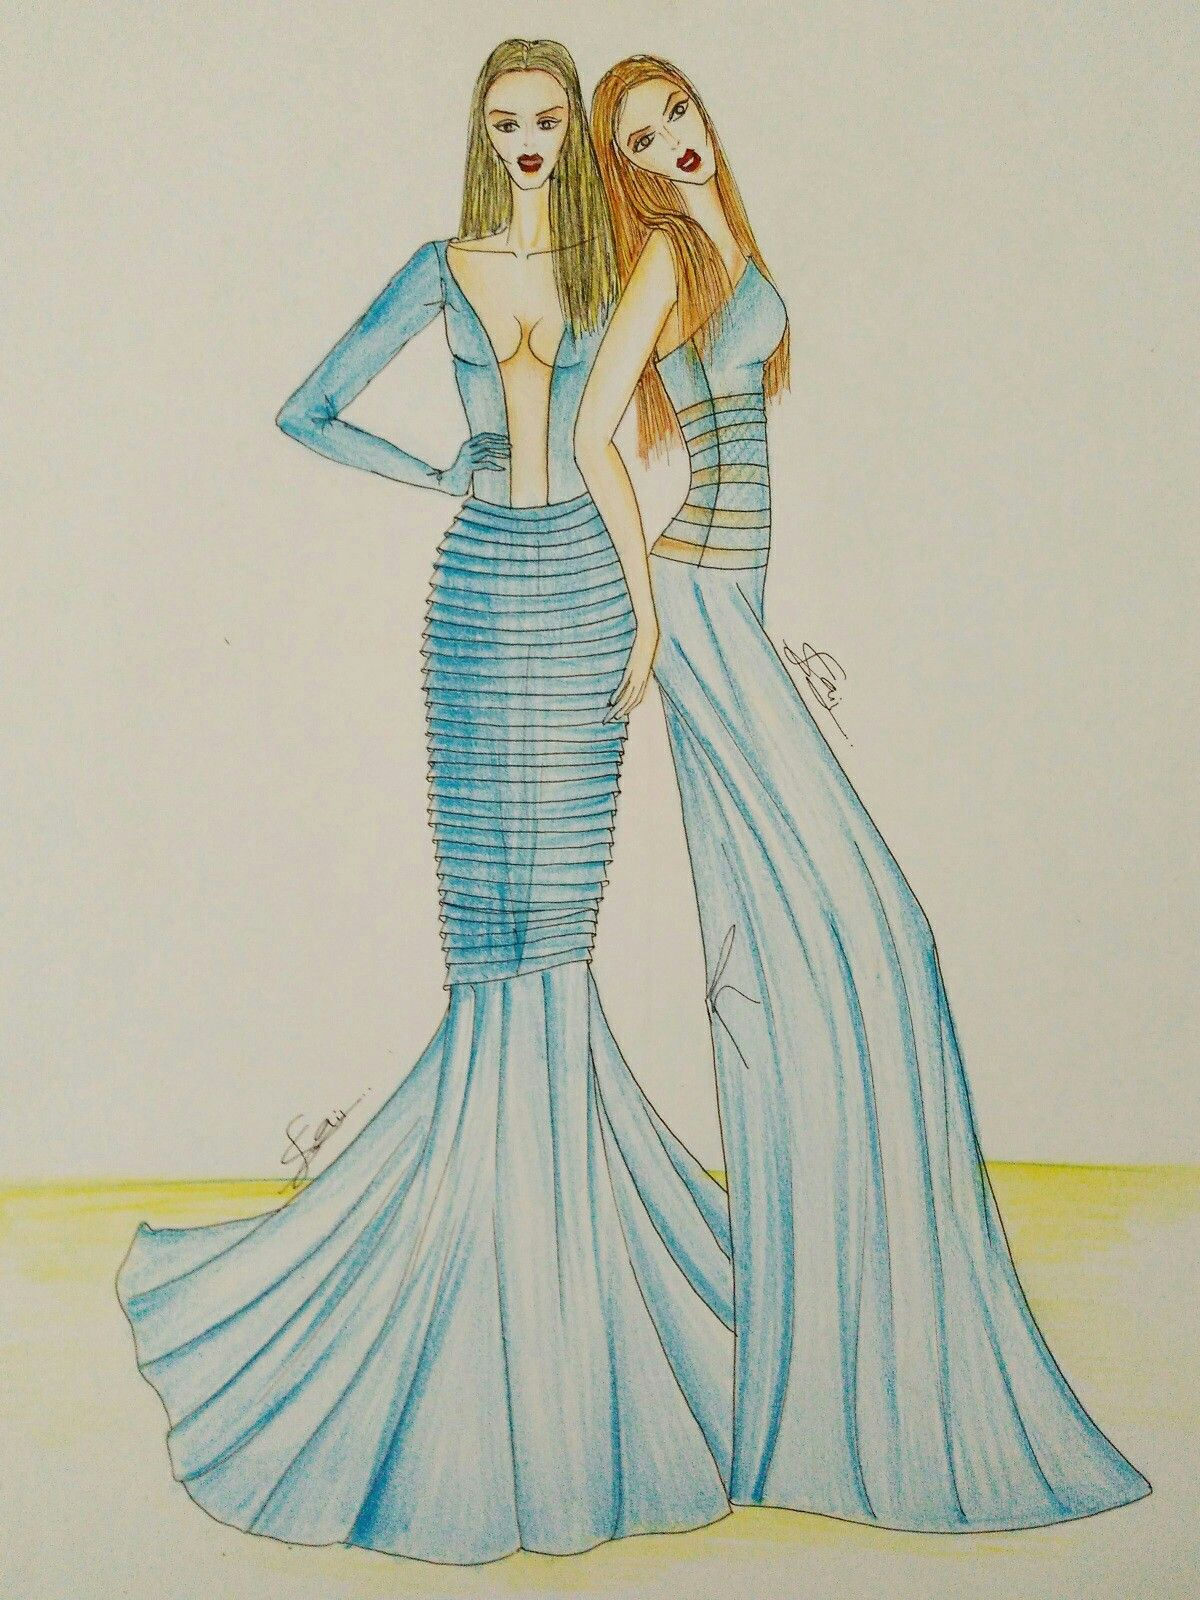 Fashion Illustration by Sanyam Jain Blue gowns, evening wear, composition, quick illustrations